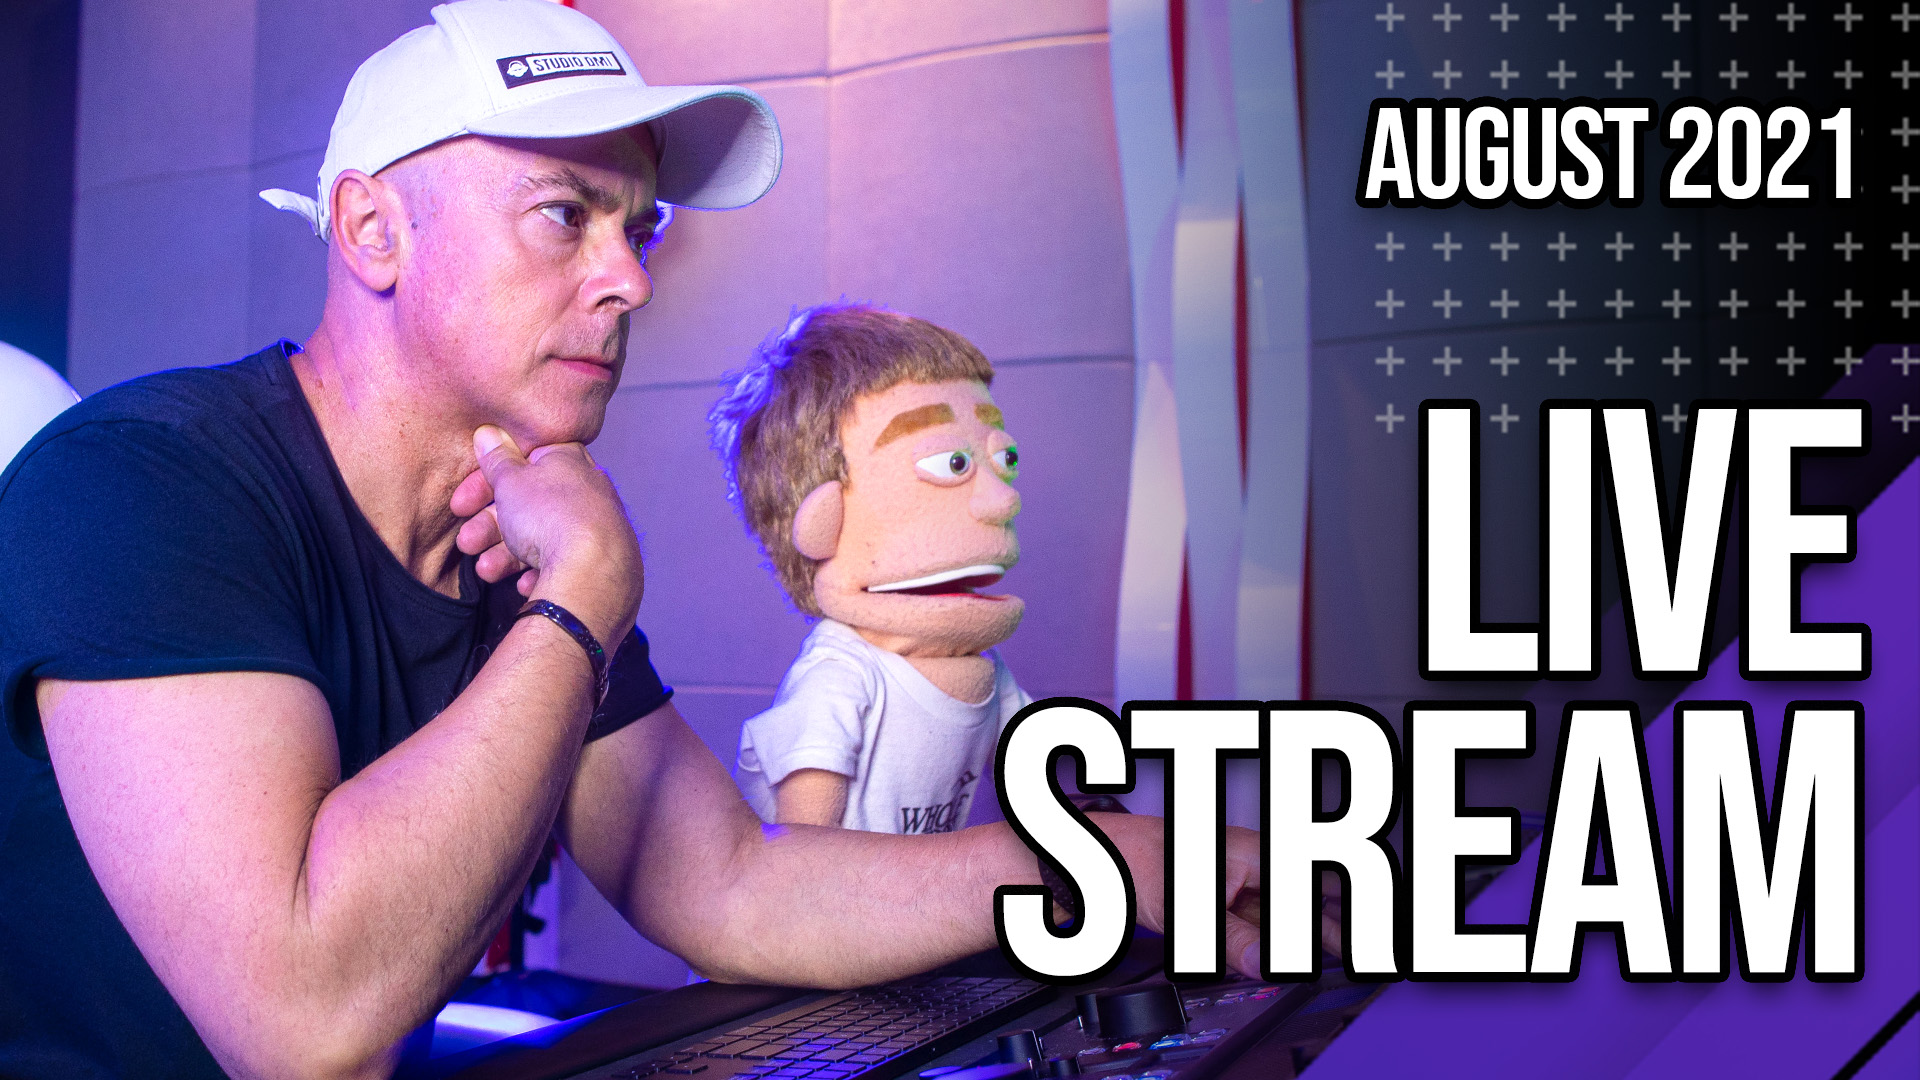 AUGUST LIVE STREAM WIDE